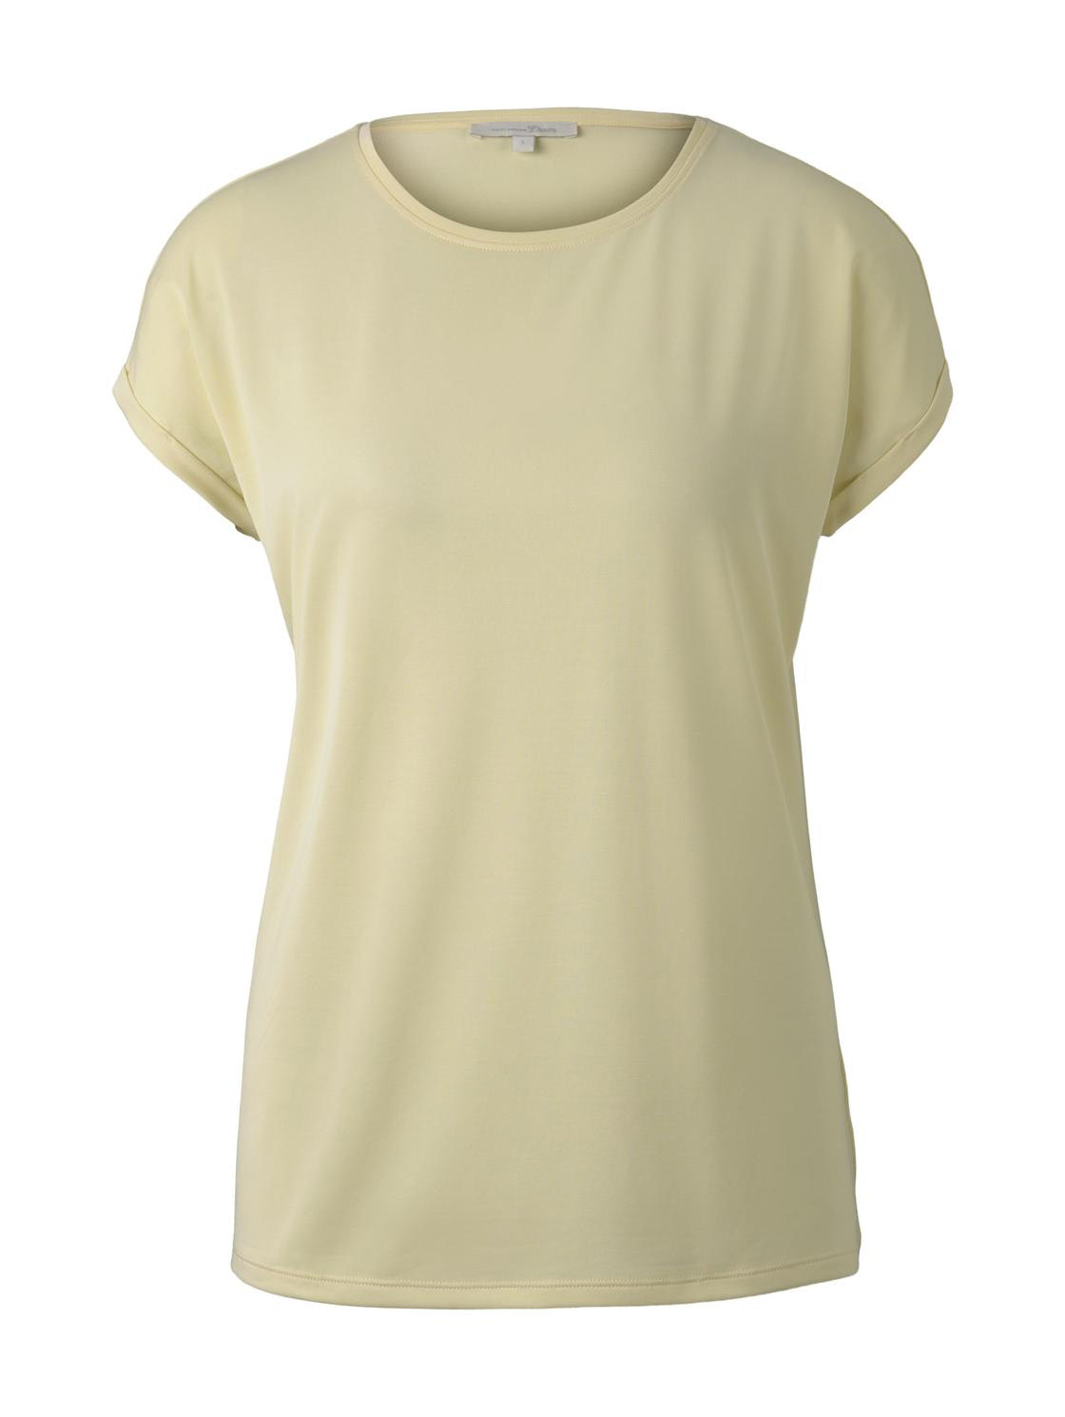 Tom Tailor lockeres Basic T-Shirt gelb